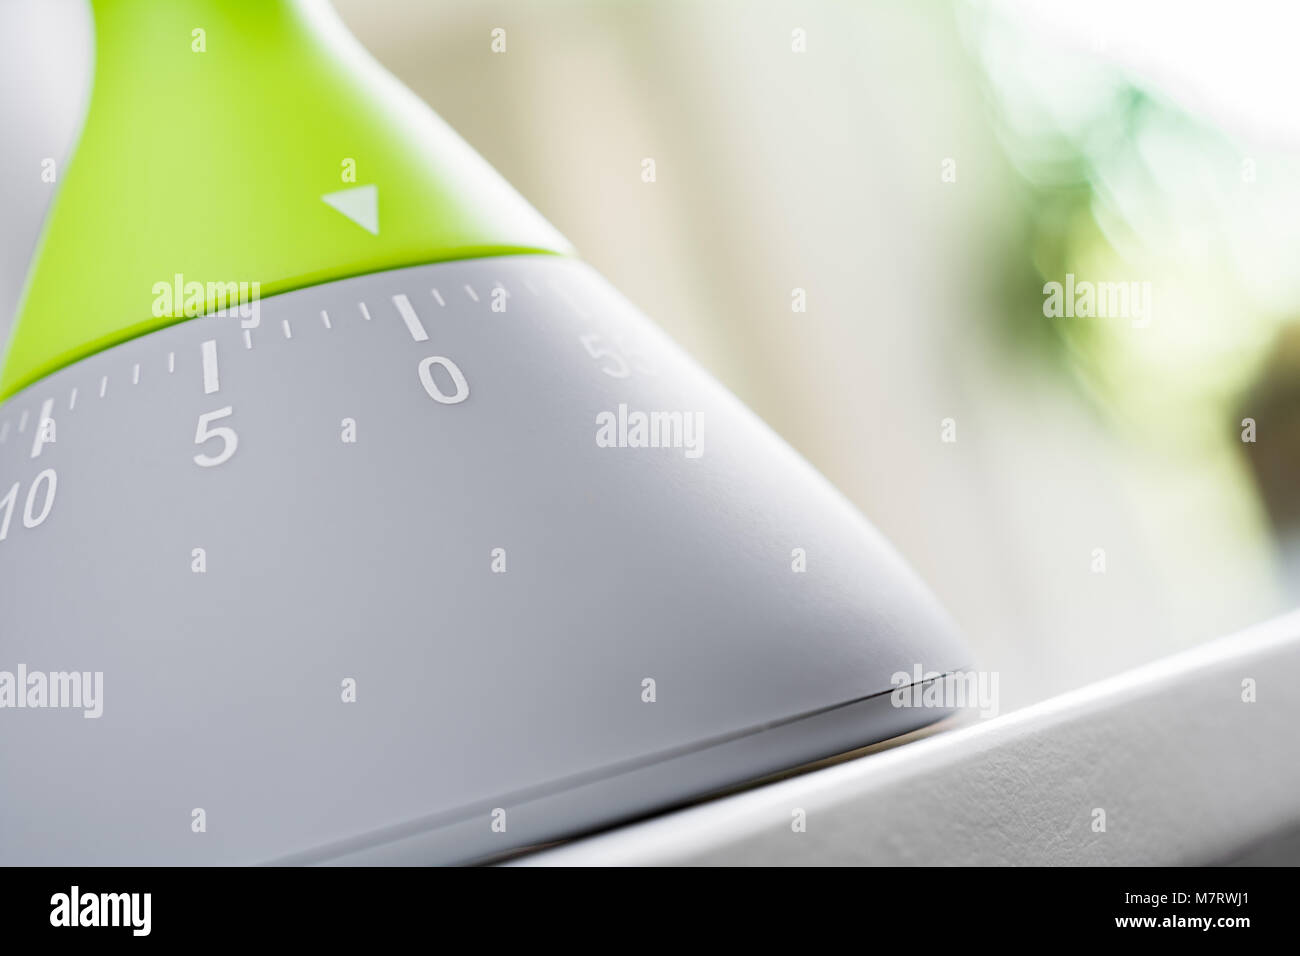 0 Minutes / 1 hour - Closeup Of An Analog Green / Grey Kitchen Egg Timer On White Table - Stock Image